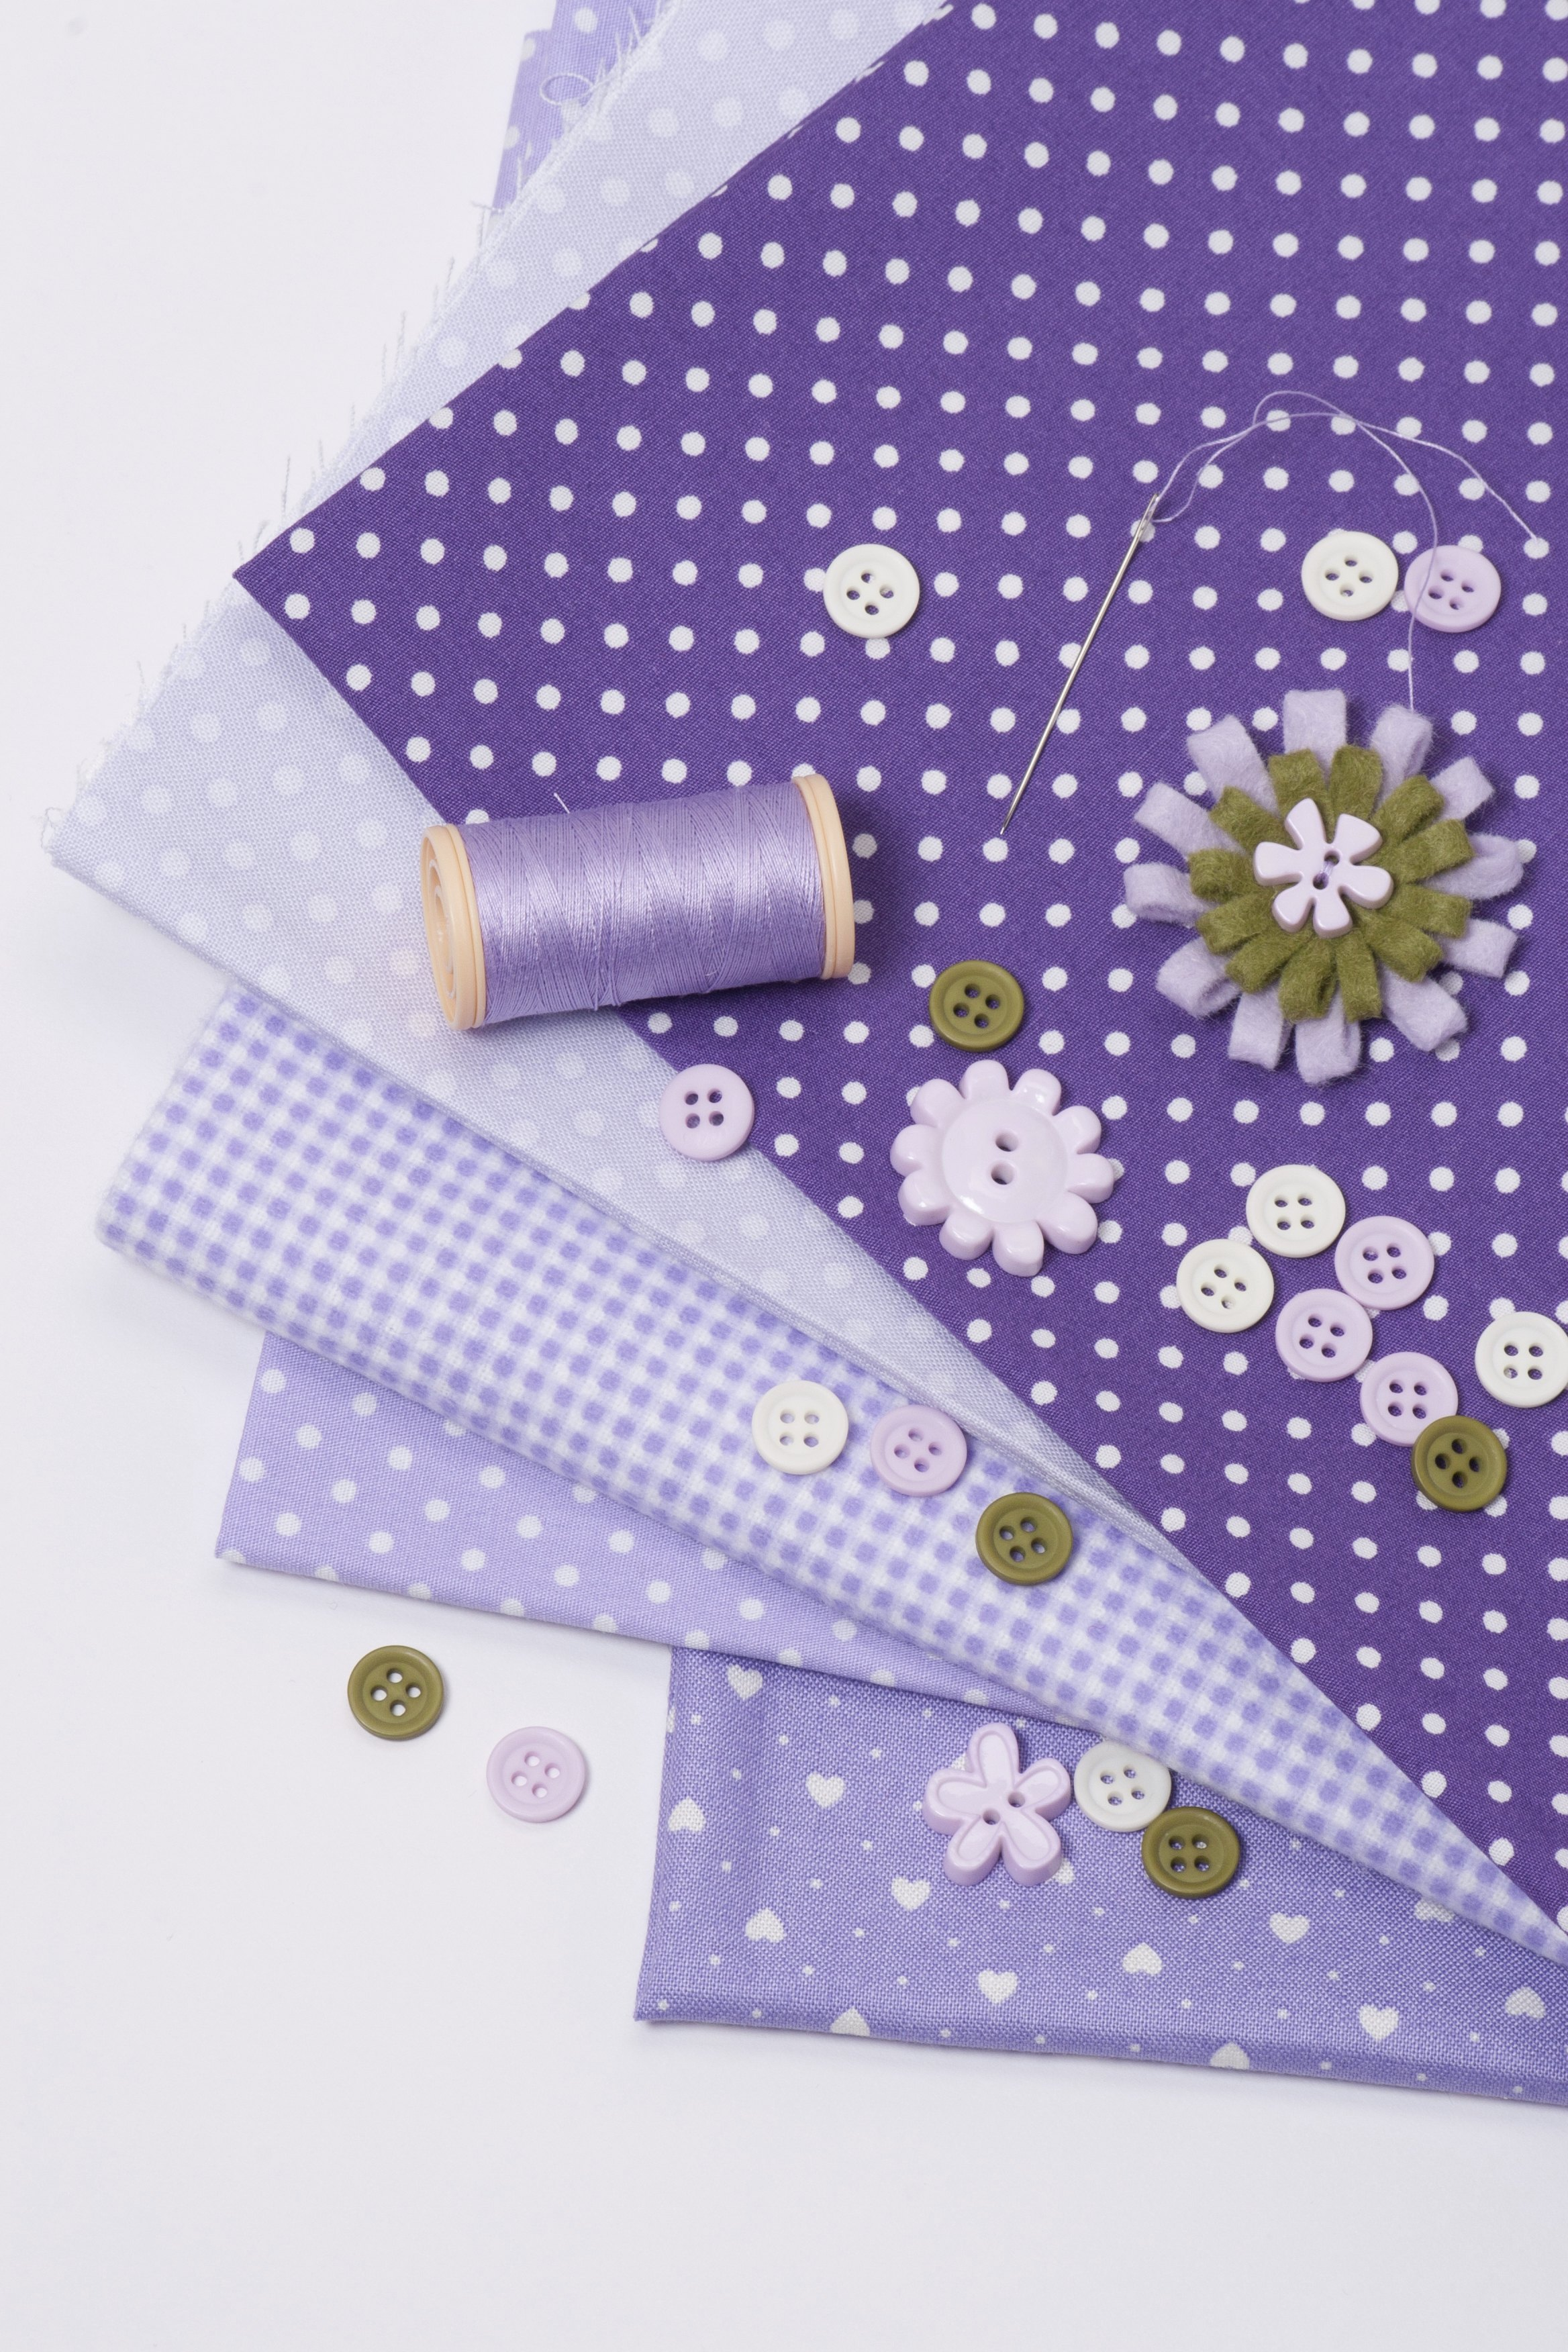 How To Make Your Own Fabric Jelly Rolls Ehow